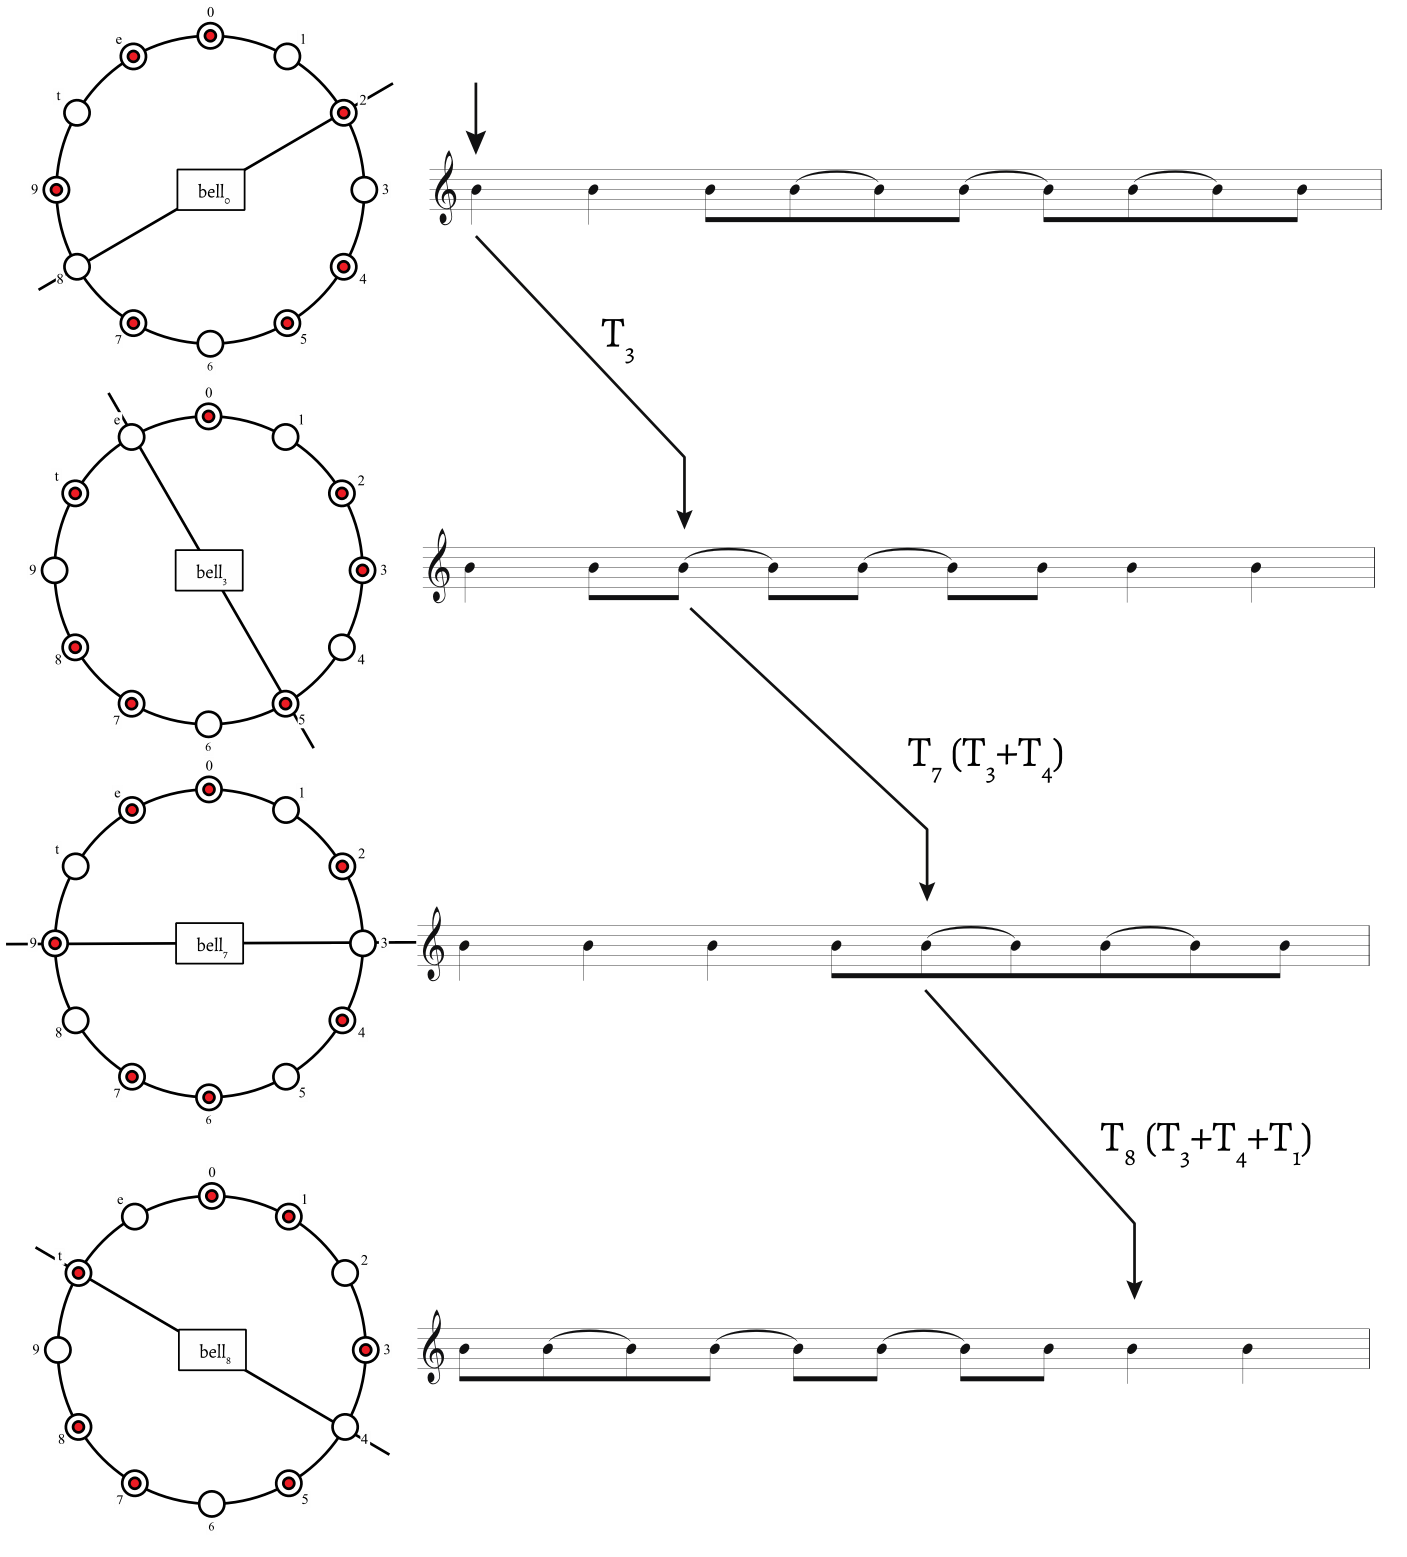 Figure 7. Mapping the bell pattern to the Tonada